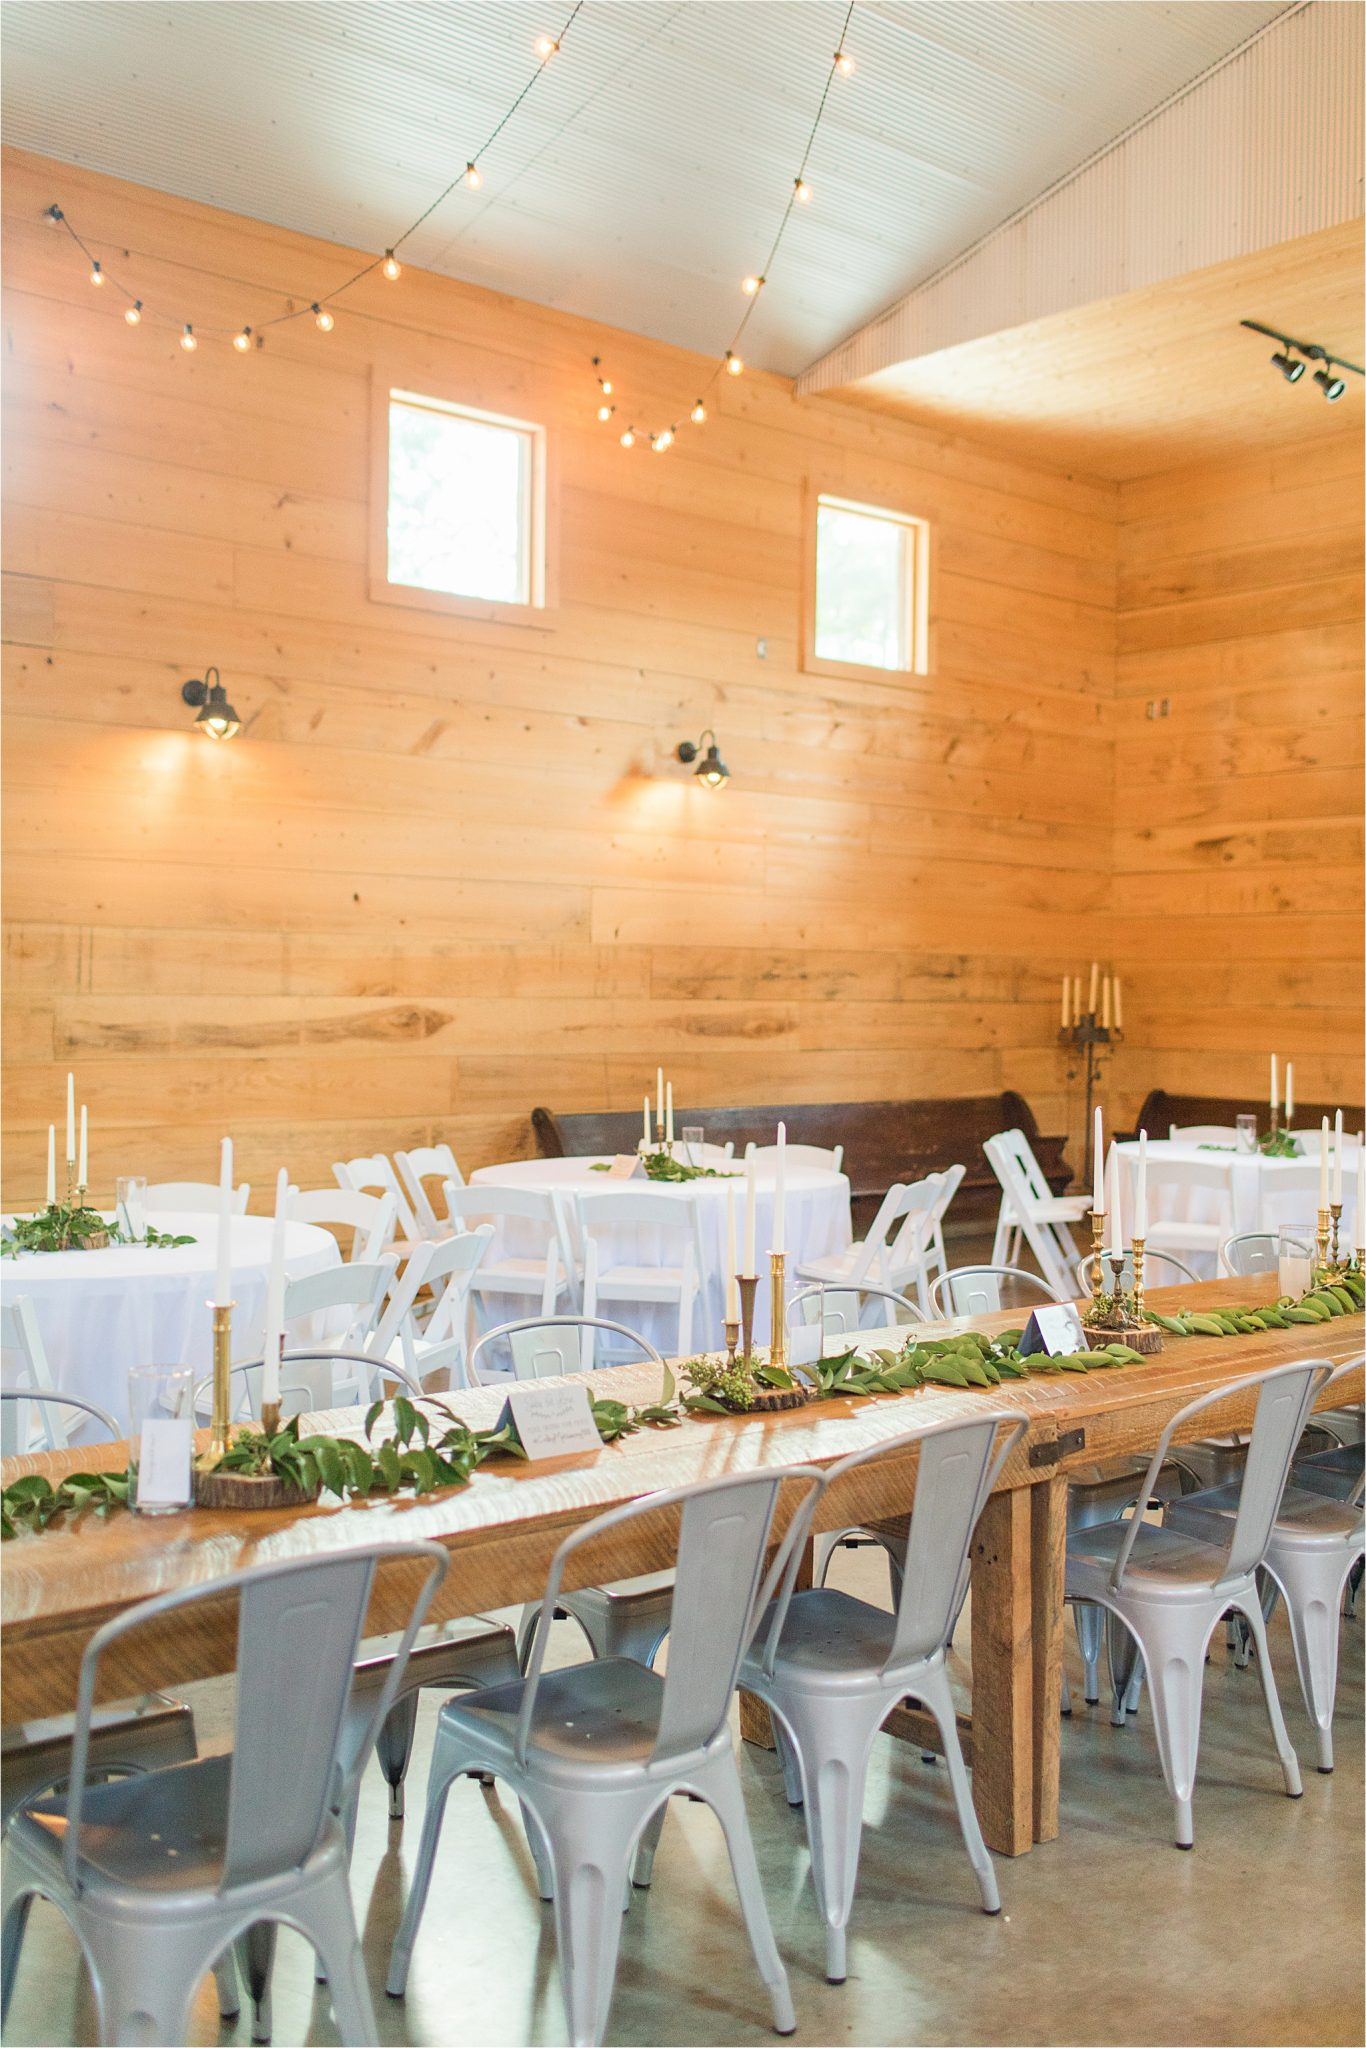 wedding-reception-alabama-venue-barn-farm-tables-metal-chairs-candle-centerpieces